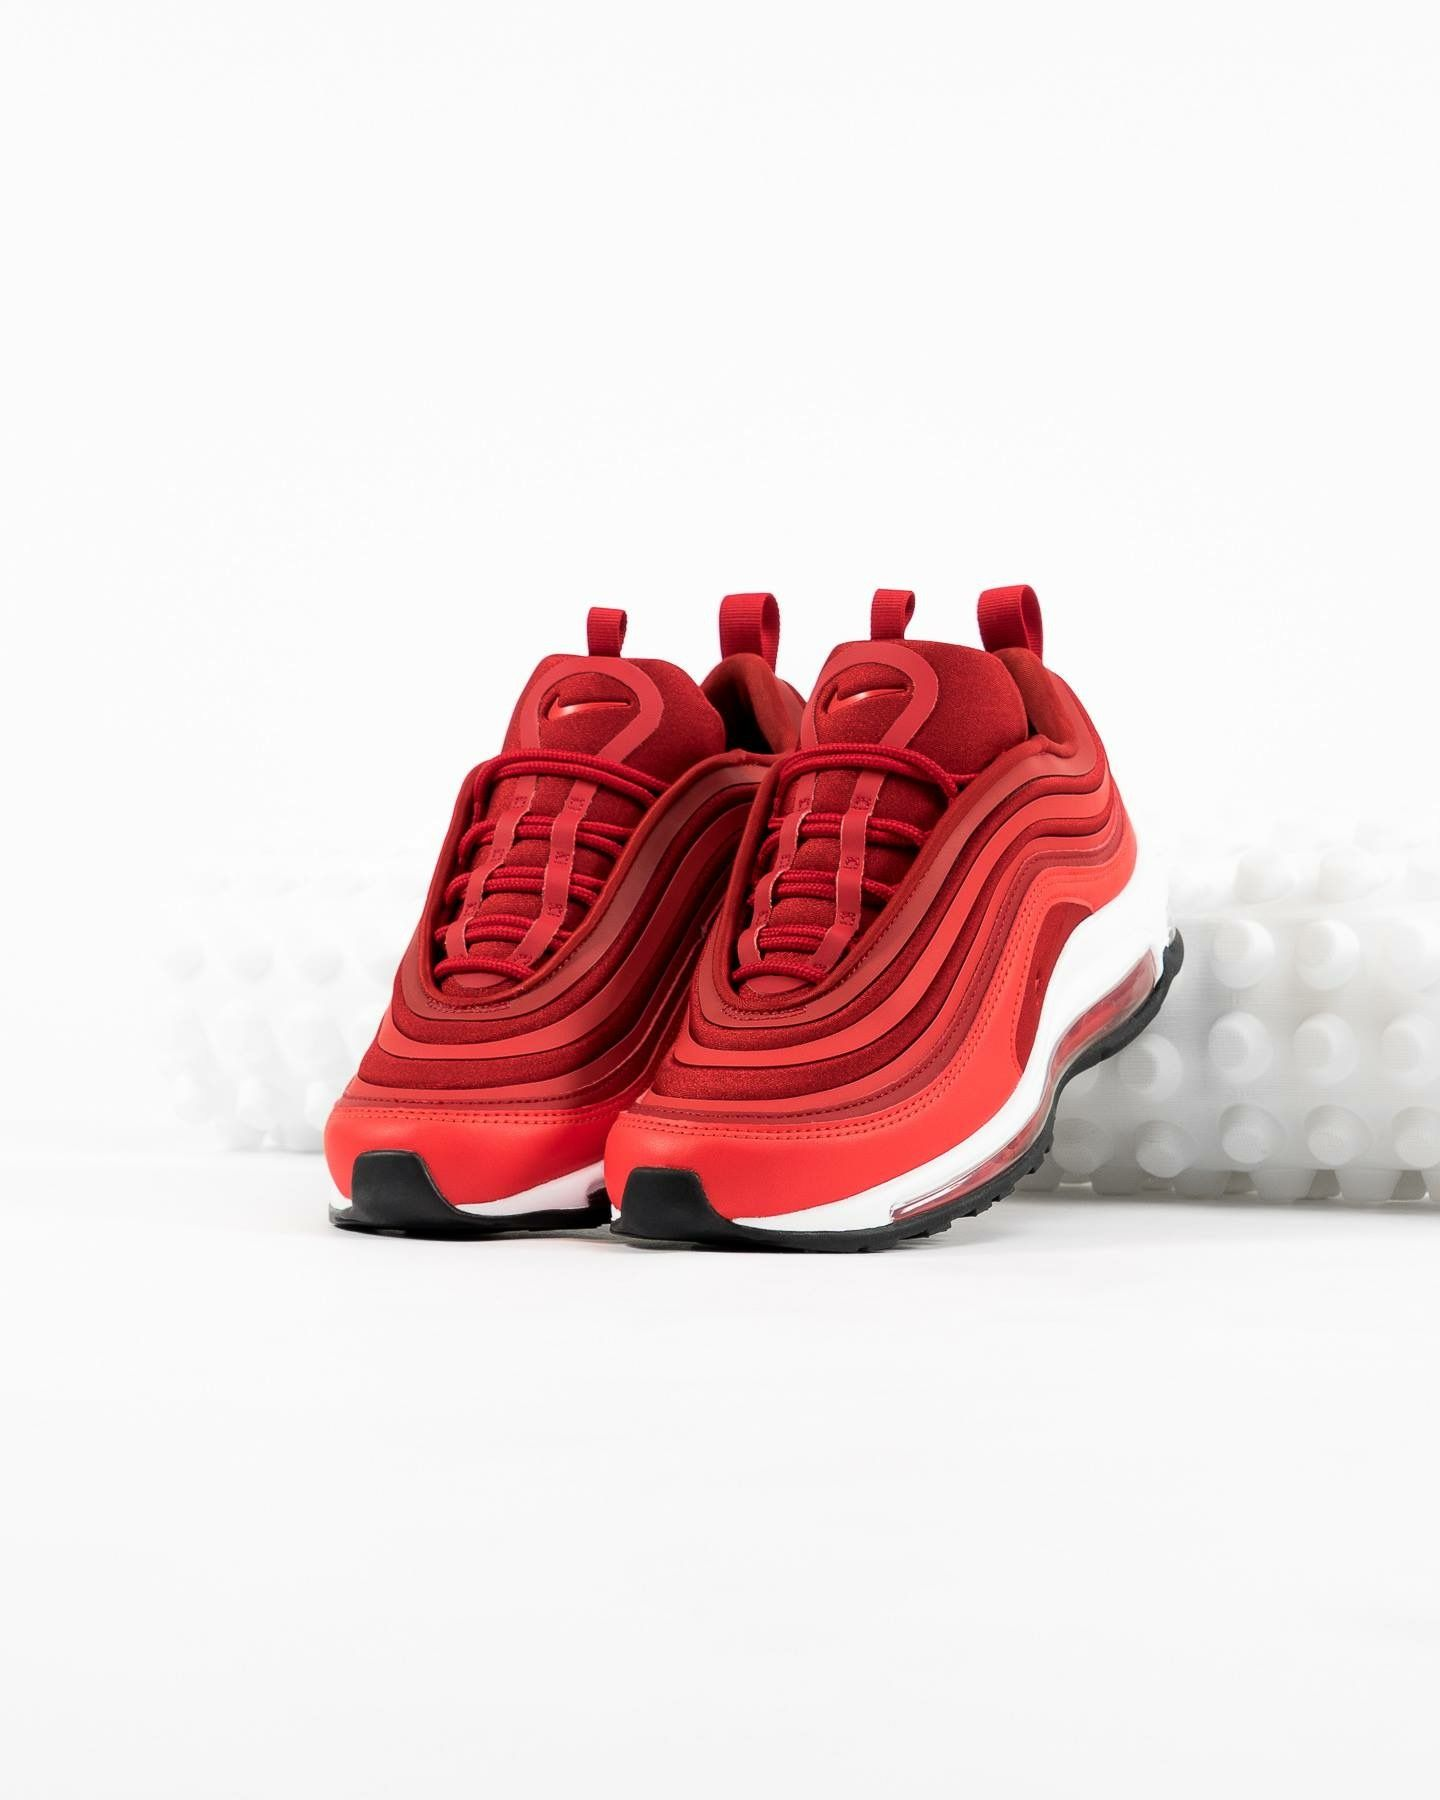 939ecc5172d Nike Air Max 97 Ultra  Red